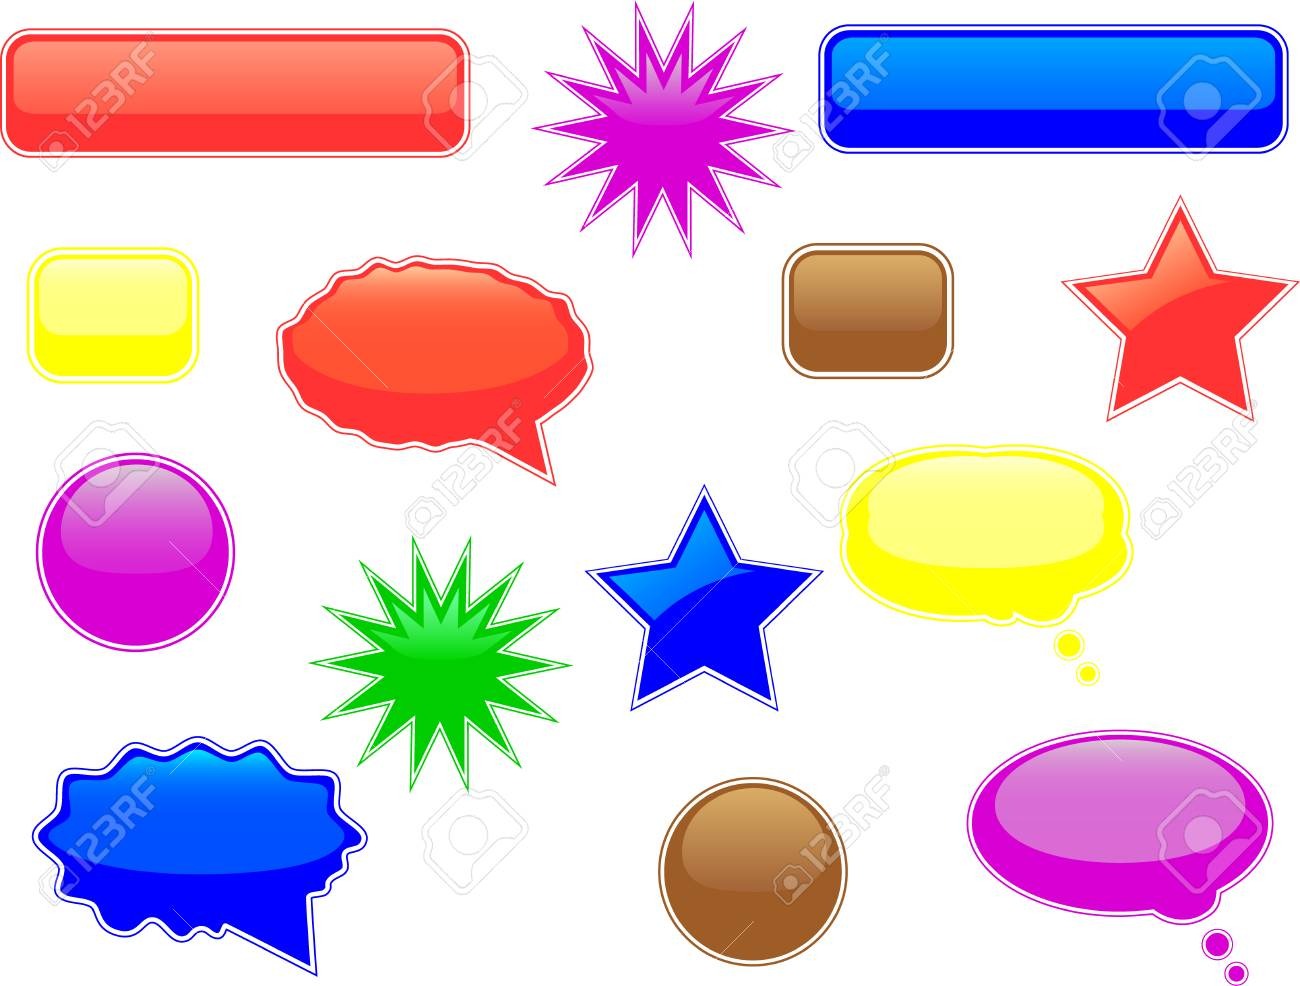 Glossy speech and thought bubbles and other elements Stock Vector - 4294669